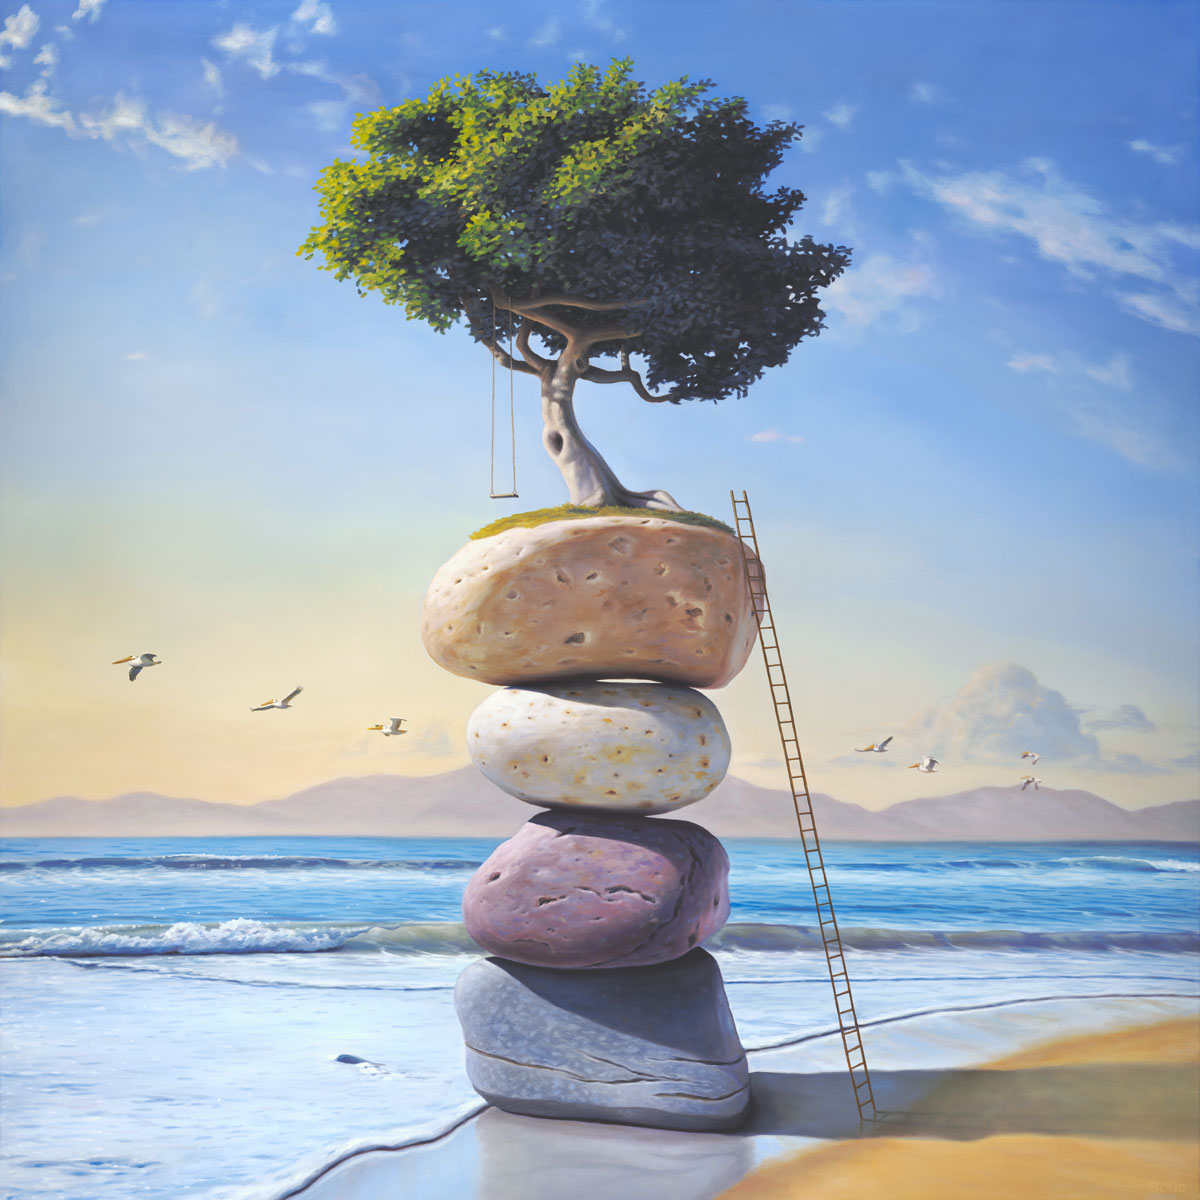 A Hymn to the Summer of My Long Ago, art wtih painting of a tree and tree swing perched on top of stacked stones on the beach with a ladder,  art with pelican bird, art with stacked stones, art with cairn rocks, art wtih flying swing in the sky, art metaphors about remembering memory memories childhood and structure, clouds, ocean, art about precarious balance, soulful uplifting inspirational art, soul stirring illusion art, romantic art,  surrealism, surreal art, dreamlike imagery, fanciful art, fantasy art, dreamscape visual, metaphysical art, spiritual painting, metaphysical painting, spiritual art, whimsical art, whimsy art, dream art, fantastic realism art, limited edition giclee, signed art print, fine art reproduction, original magic realism oil painting by Paul Bond